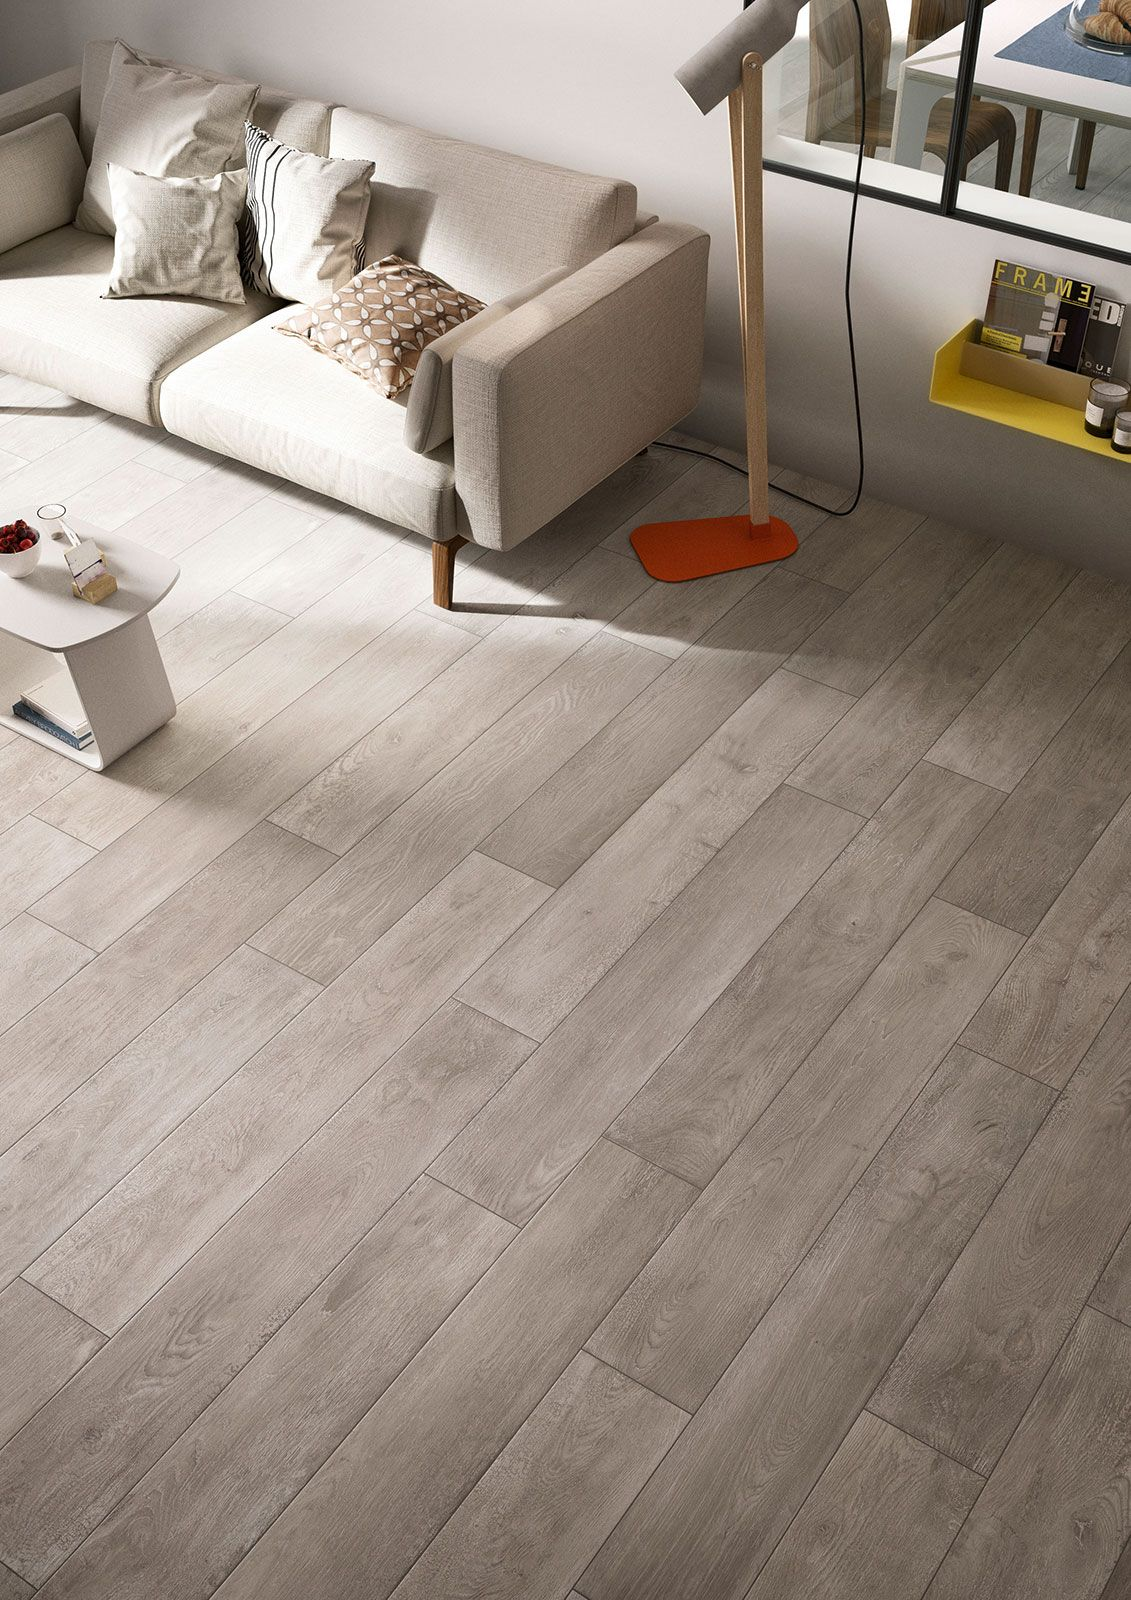 Treverktime ceramic tiles Marazzi_6535 | Flooring in 2018 ...